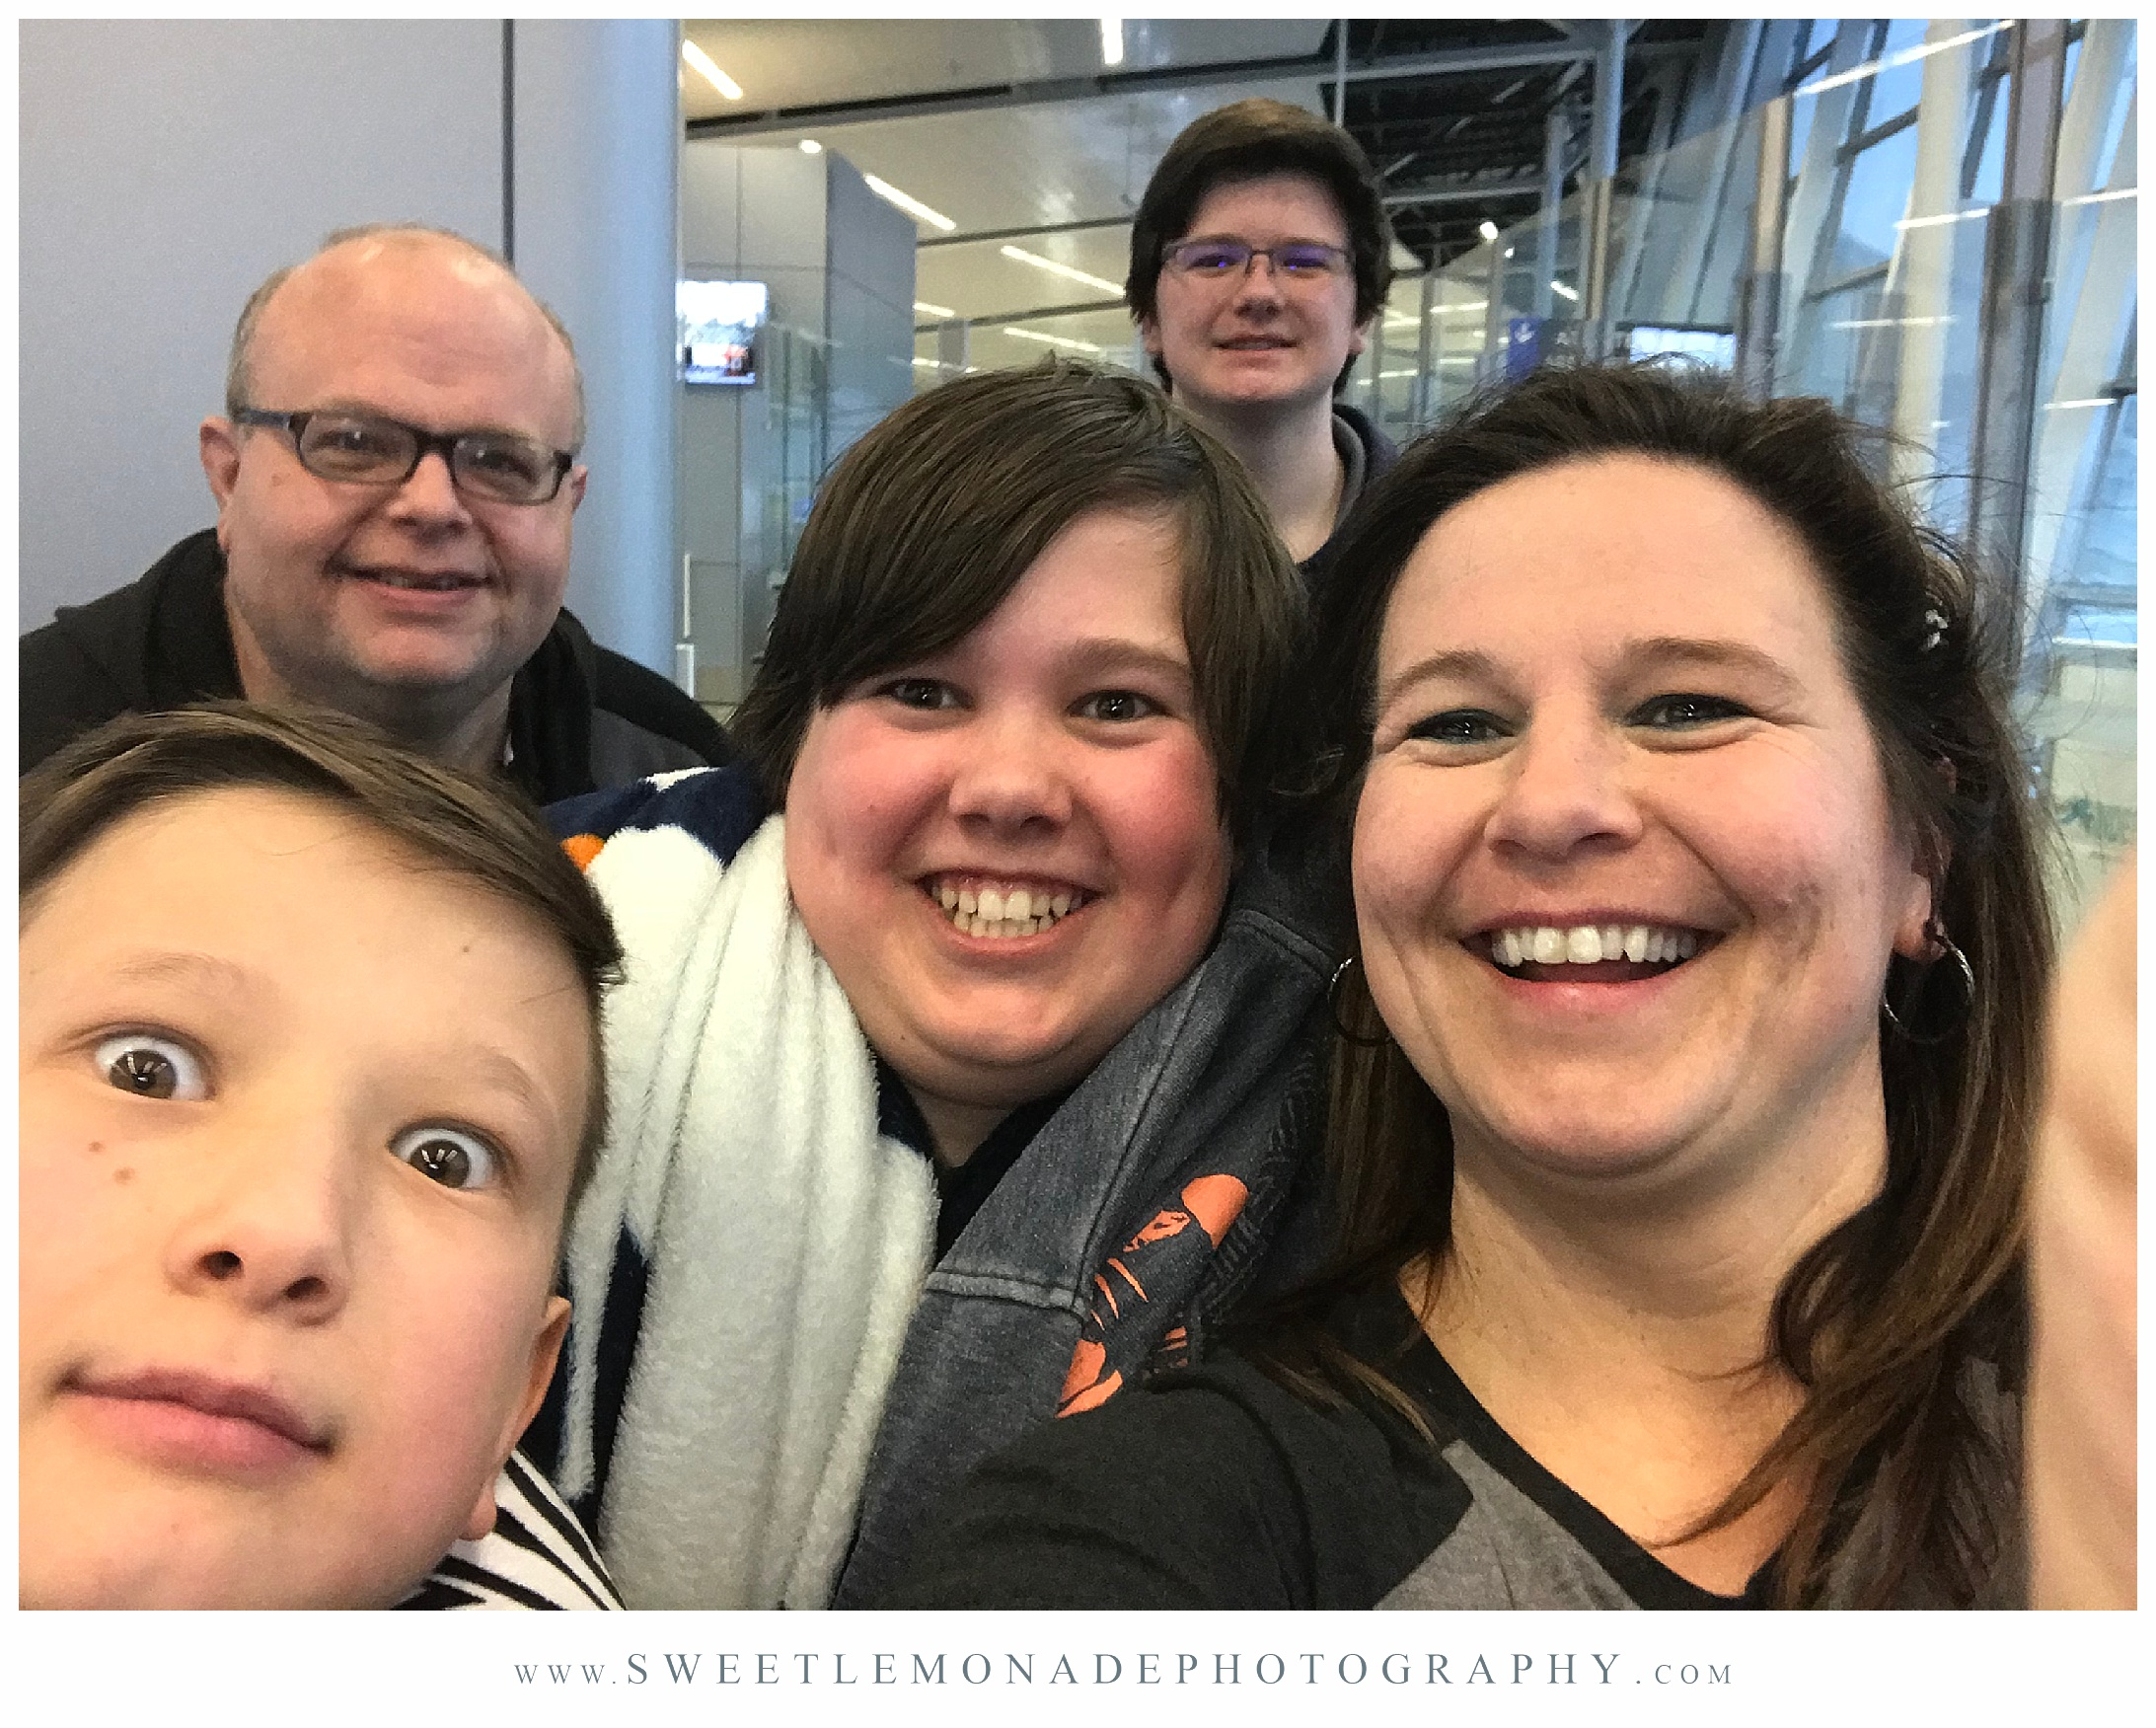 Cell selfie at the airport on our way to see our mom and grandma.